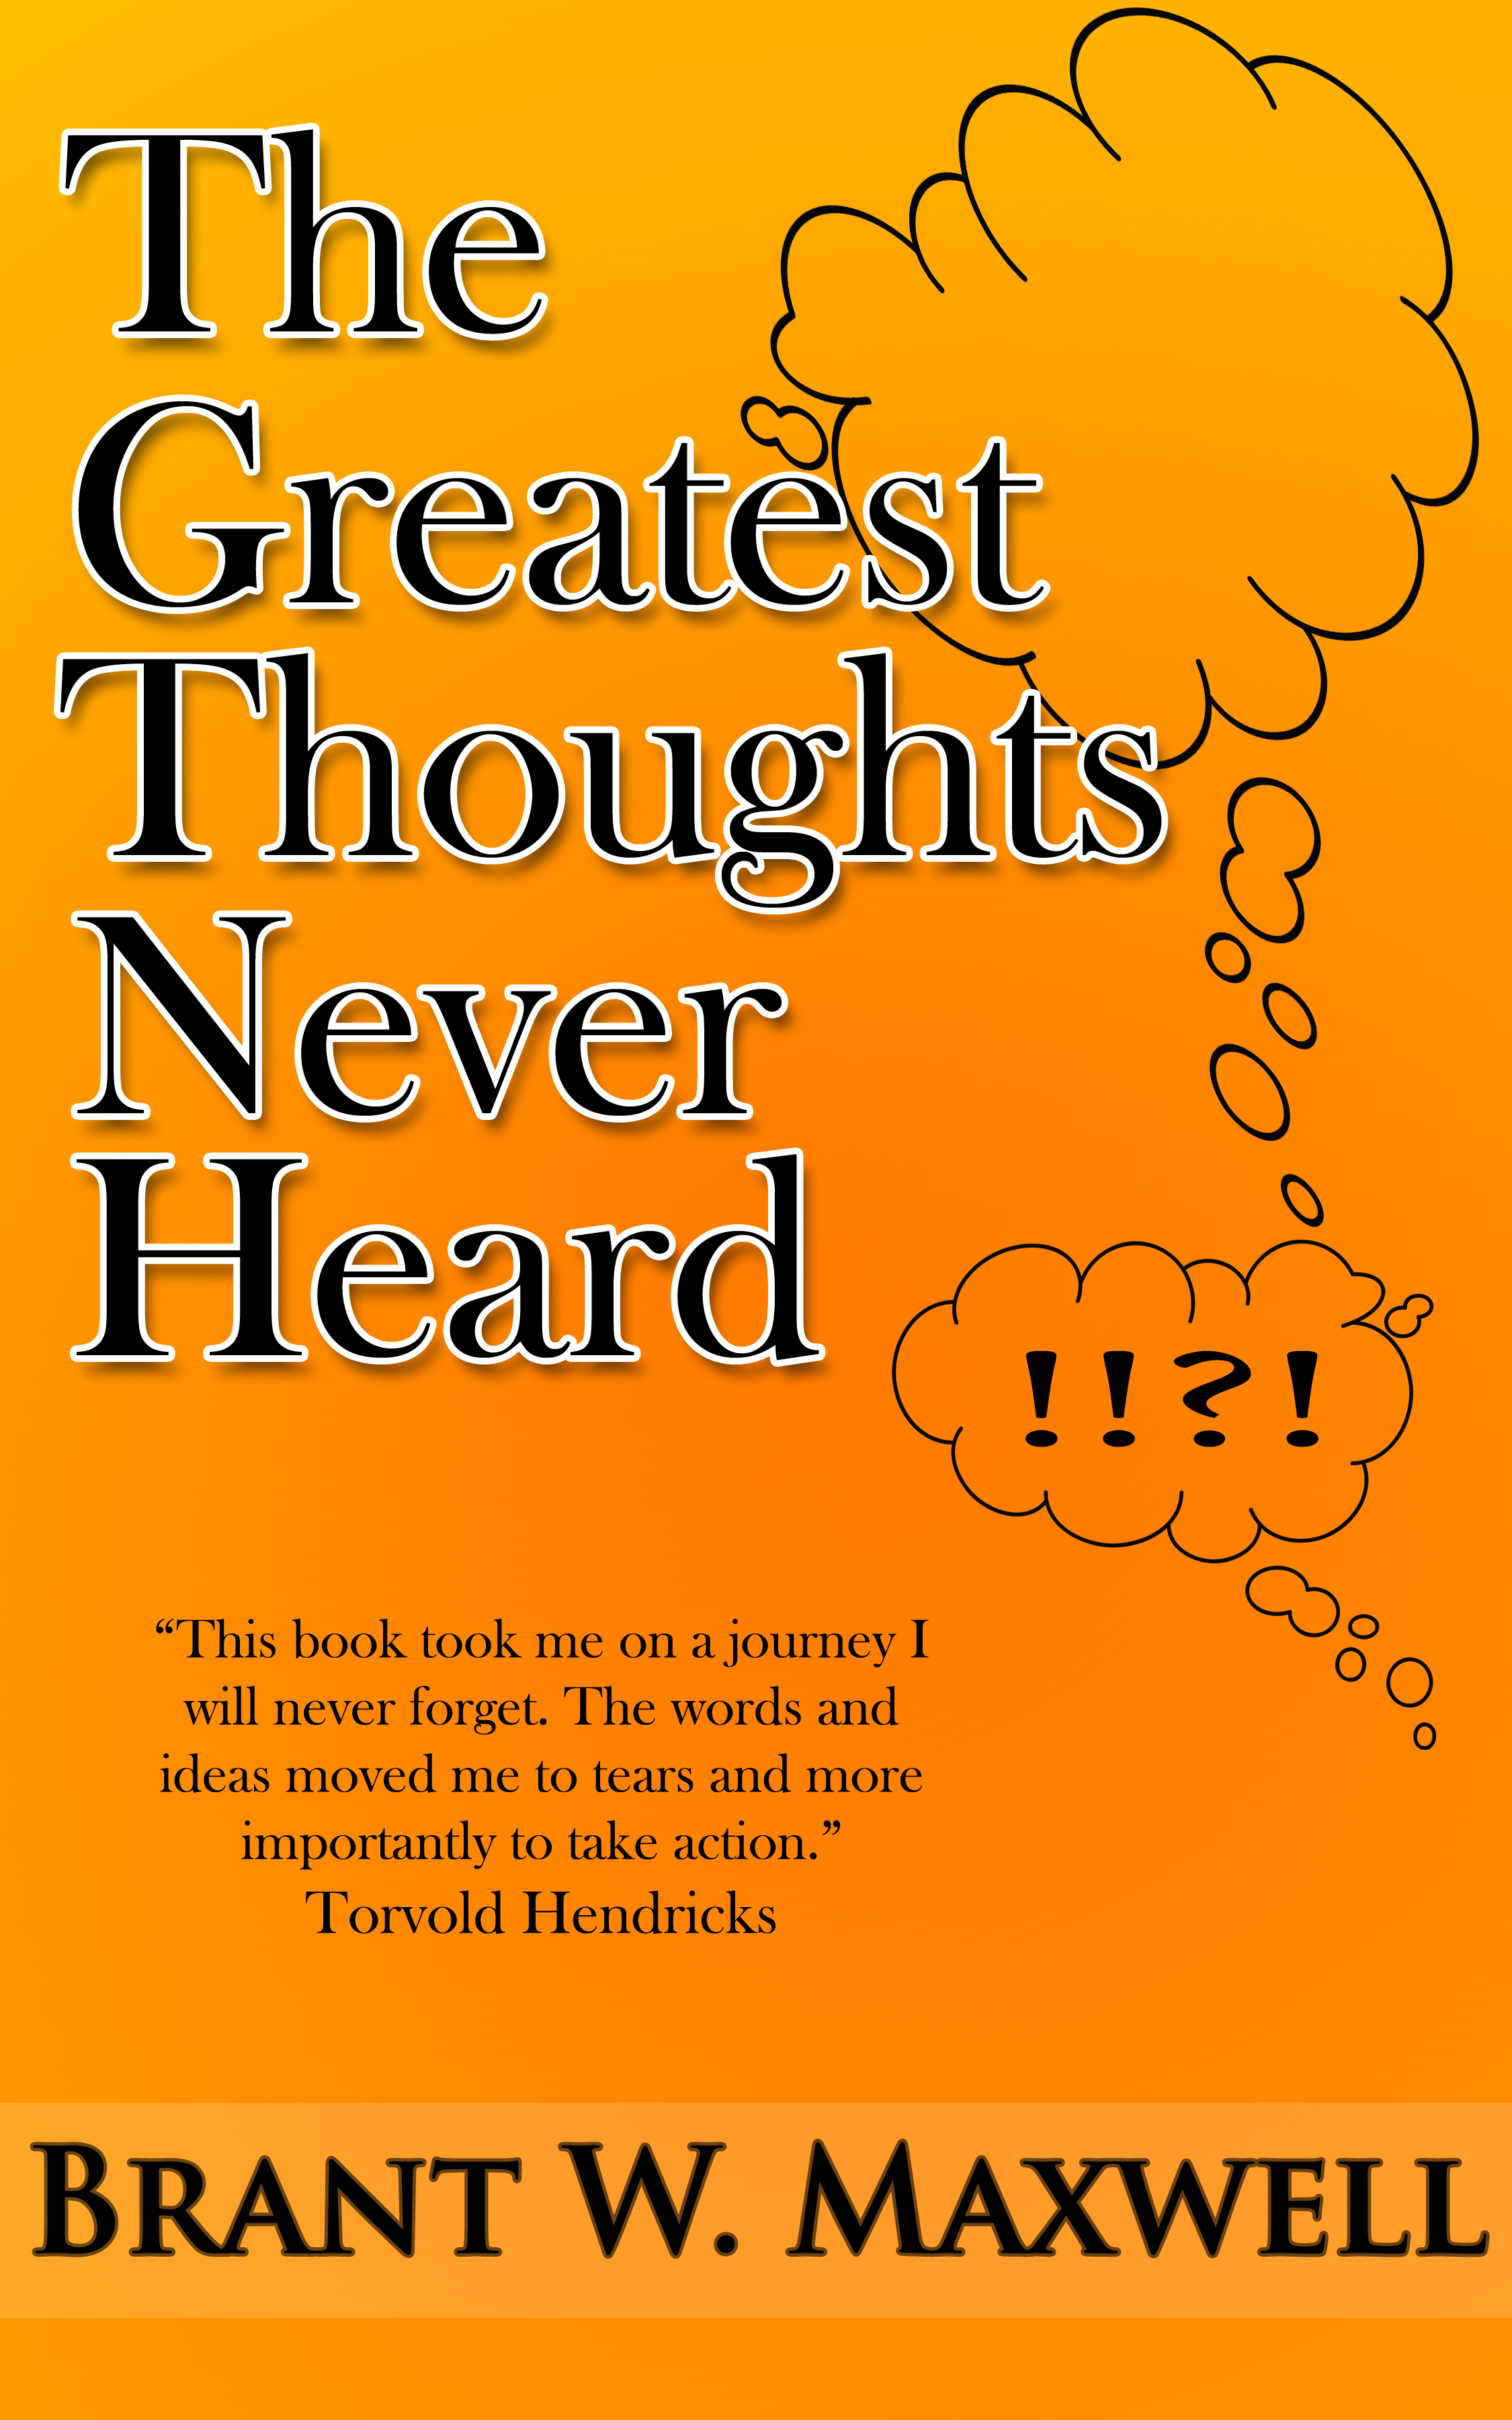 The Greatest Thoughts Never Heard By: Brant W. Maxwell